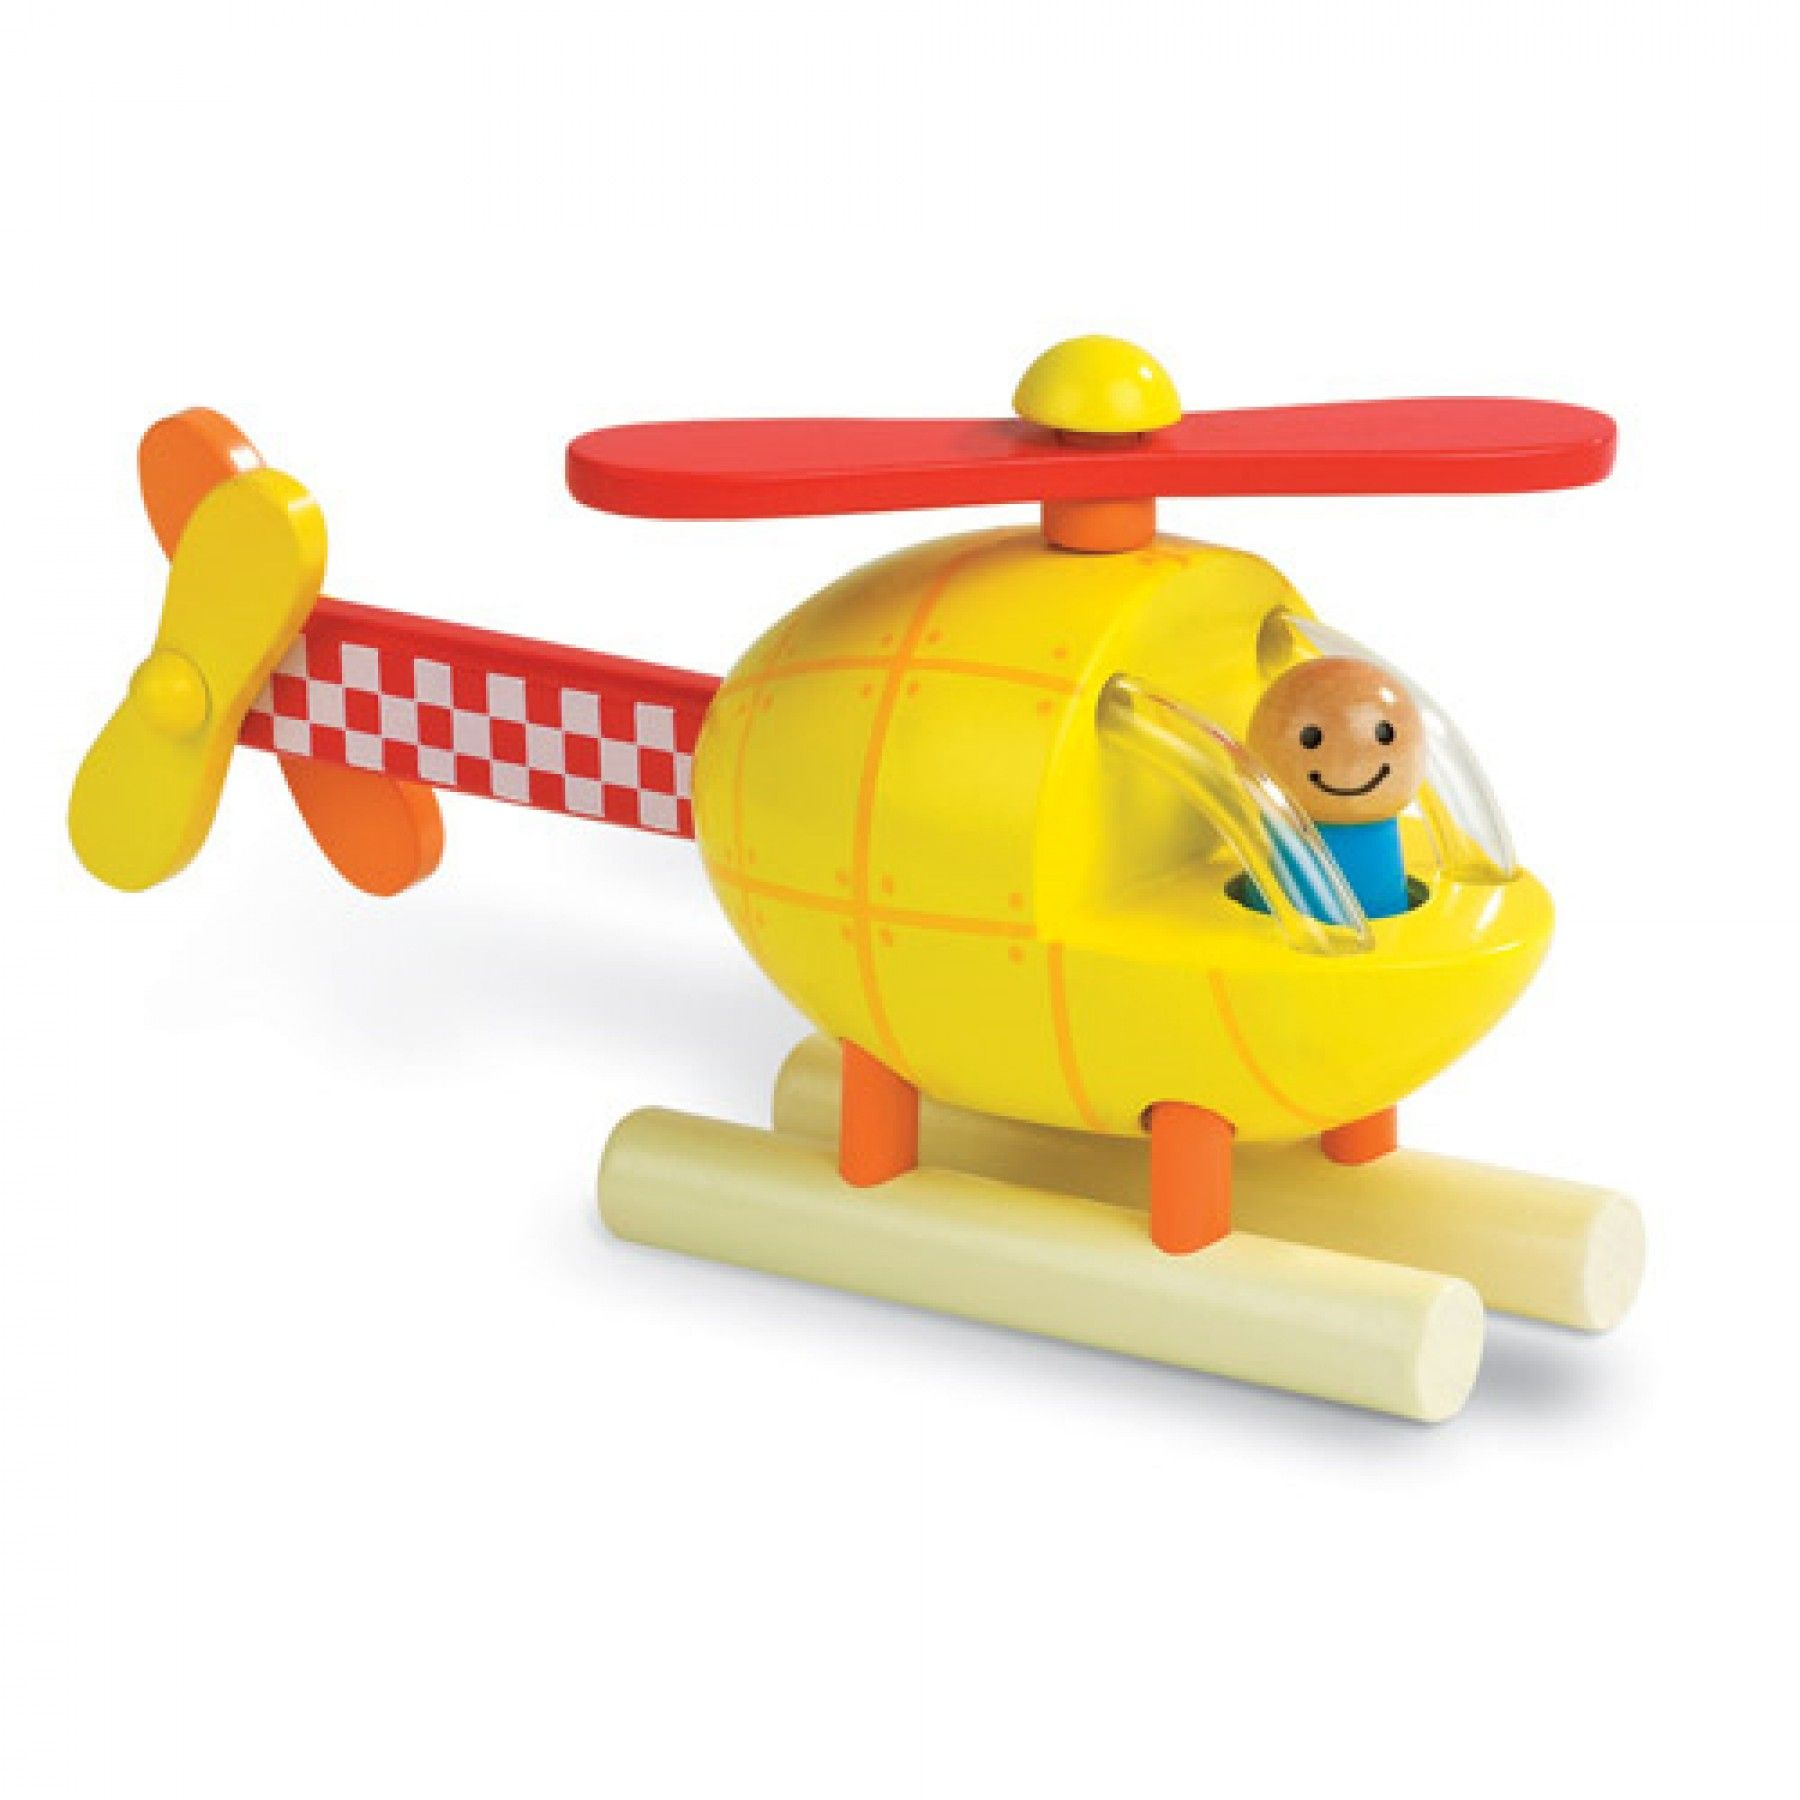 janod magneetpuzzel helicopter 5206 | ilovespeelgoed.nl